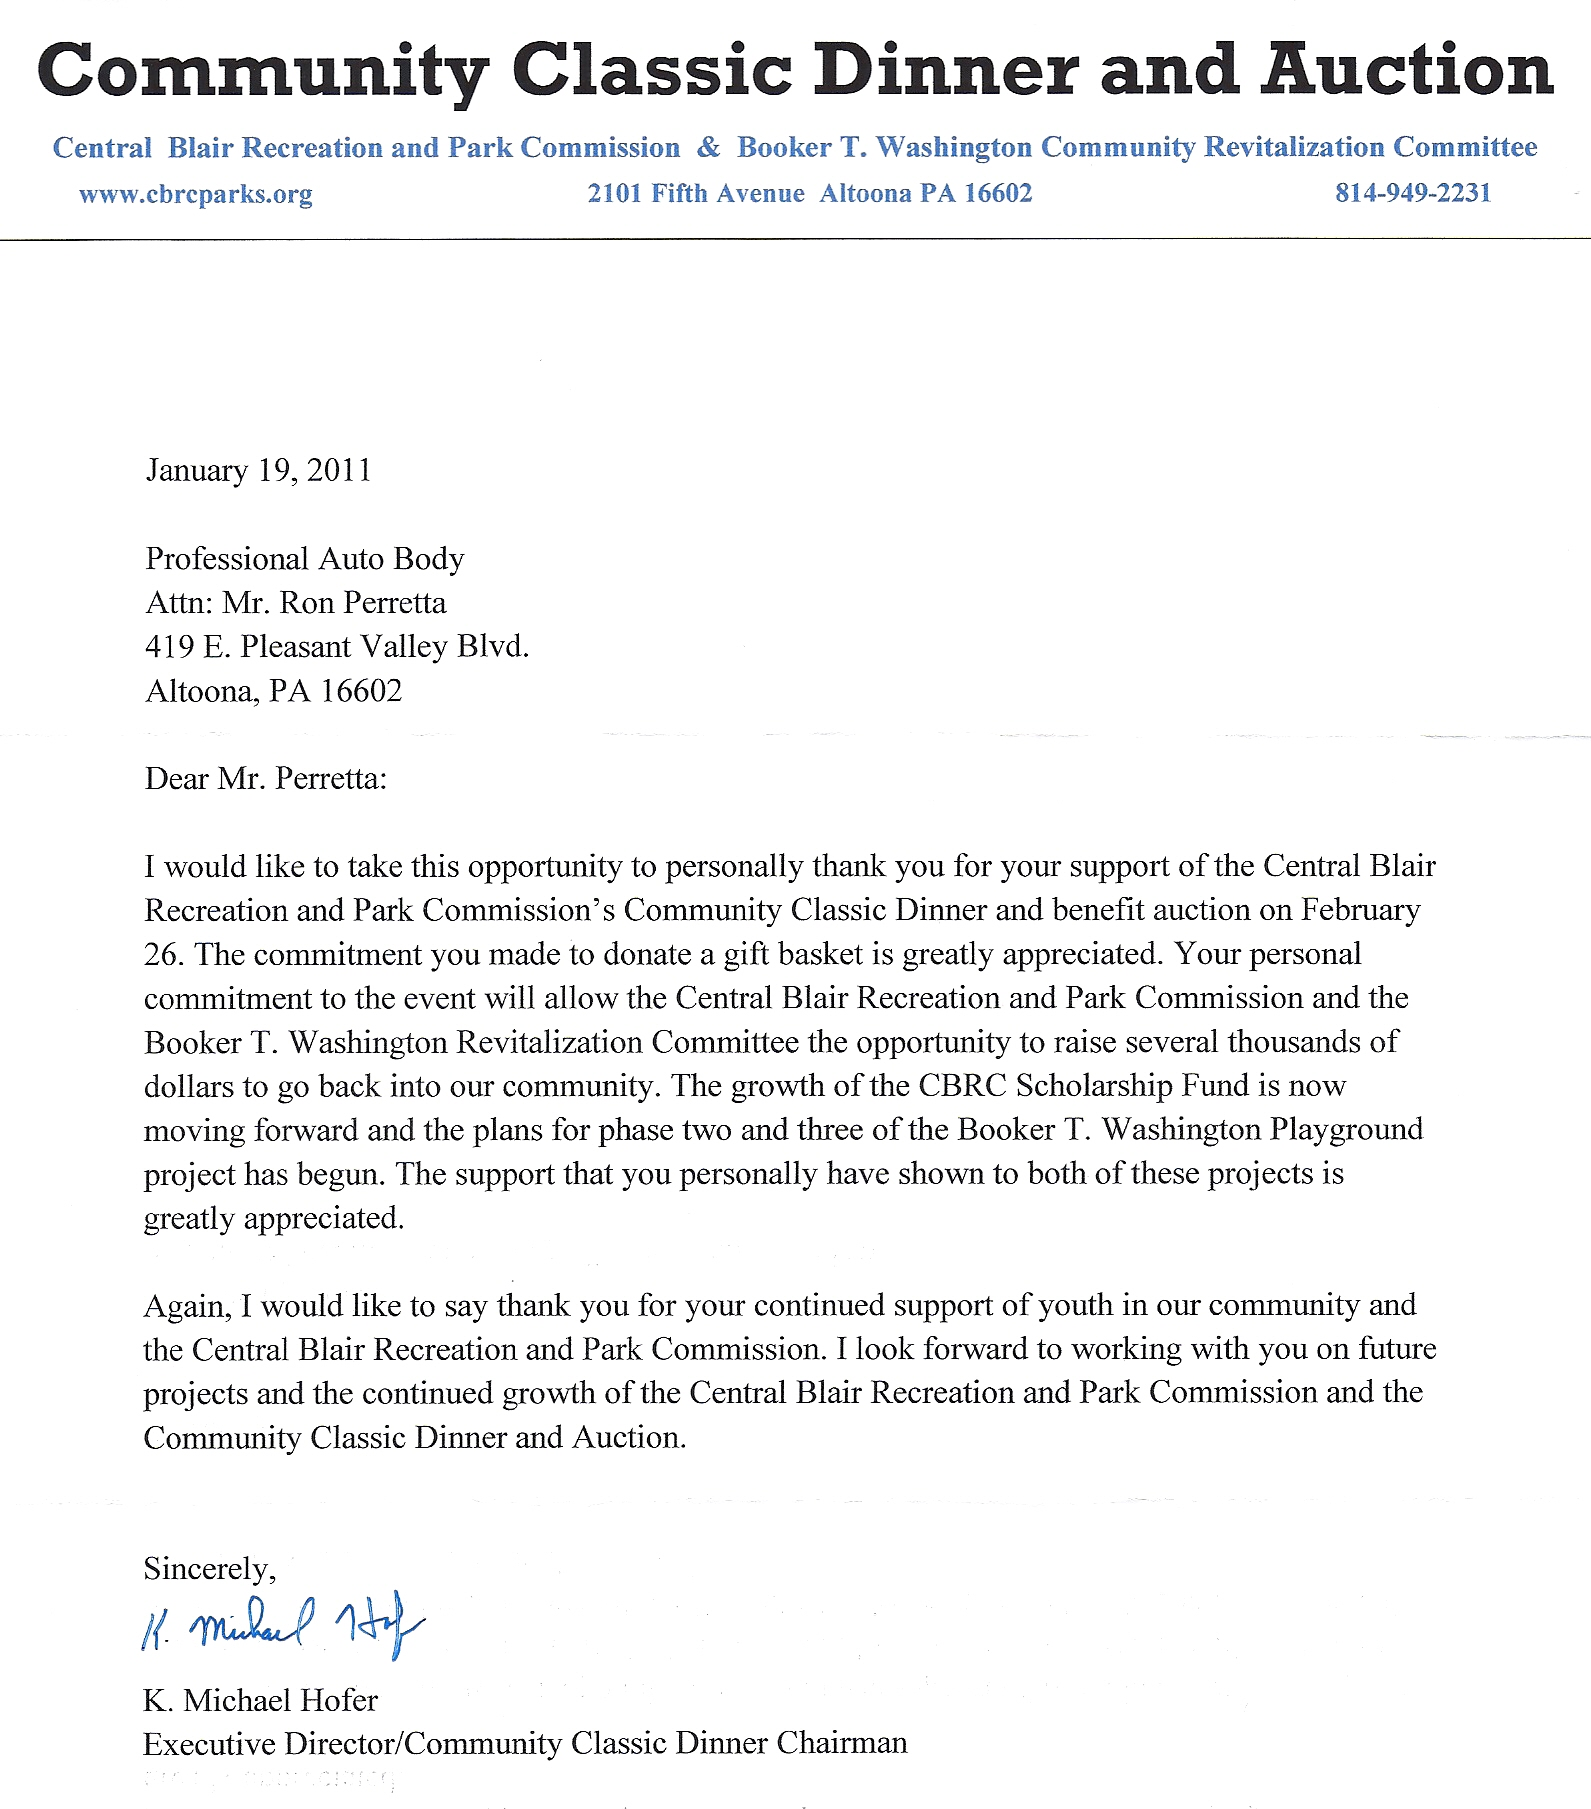 Professionals Auto Body Community Feedback – Thank You Letter for Donations